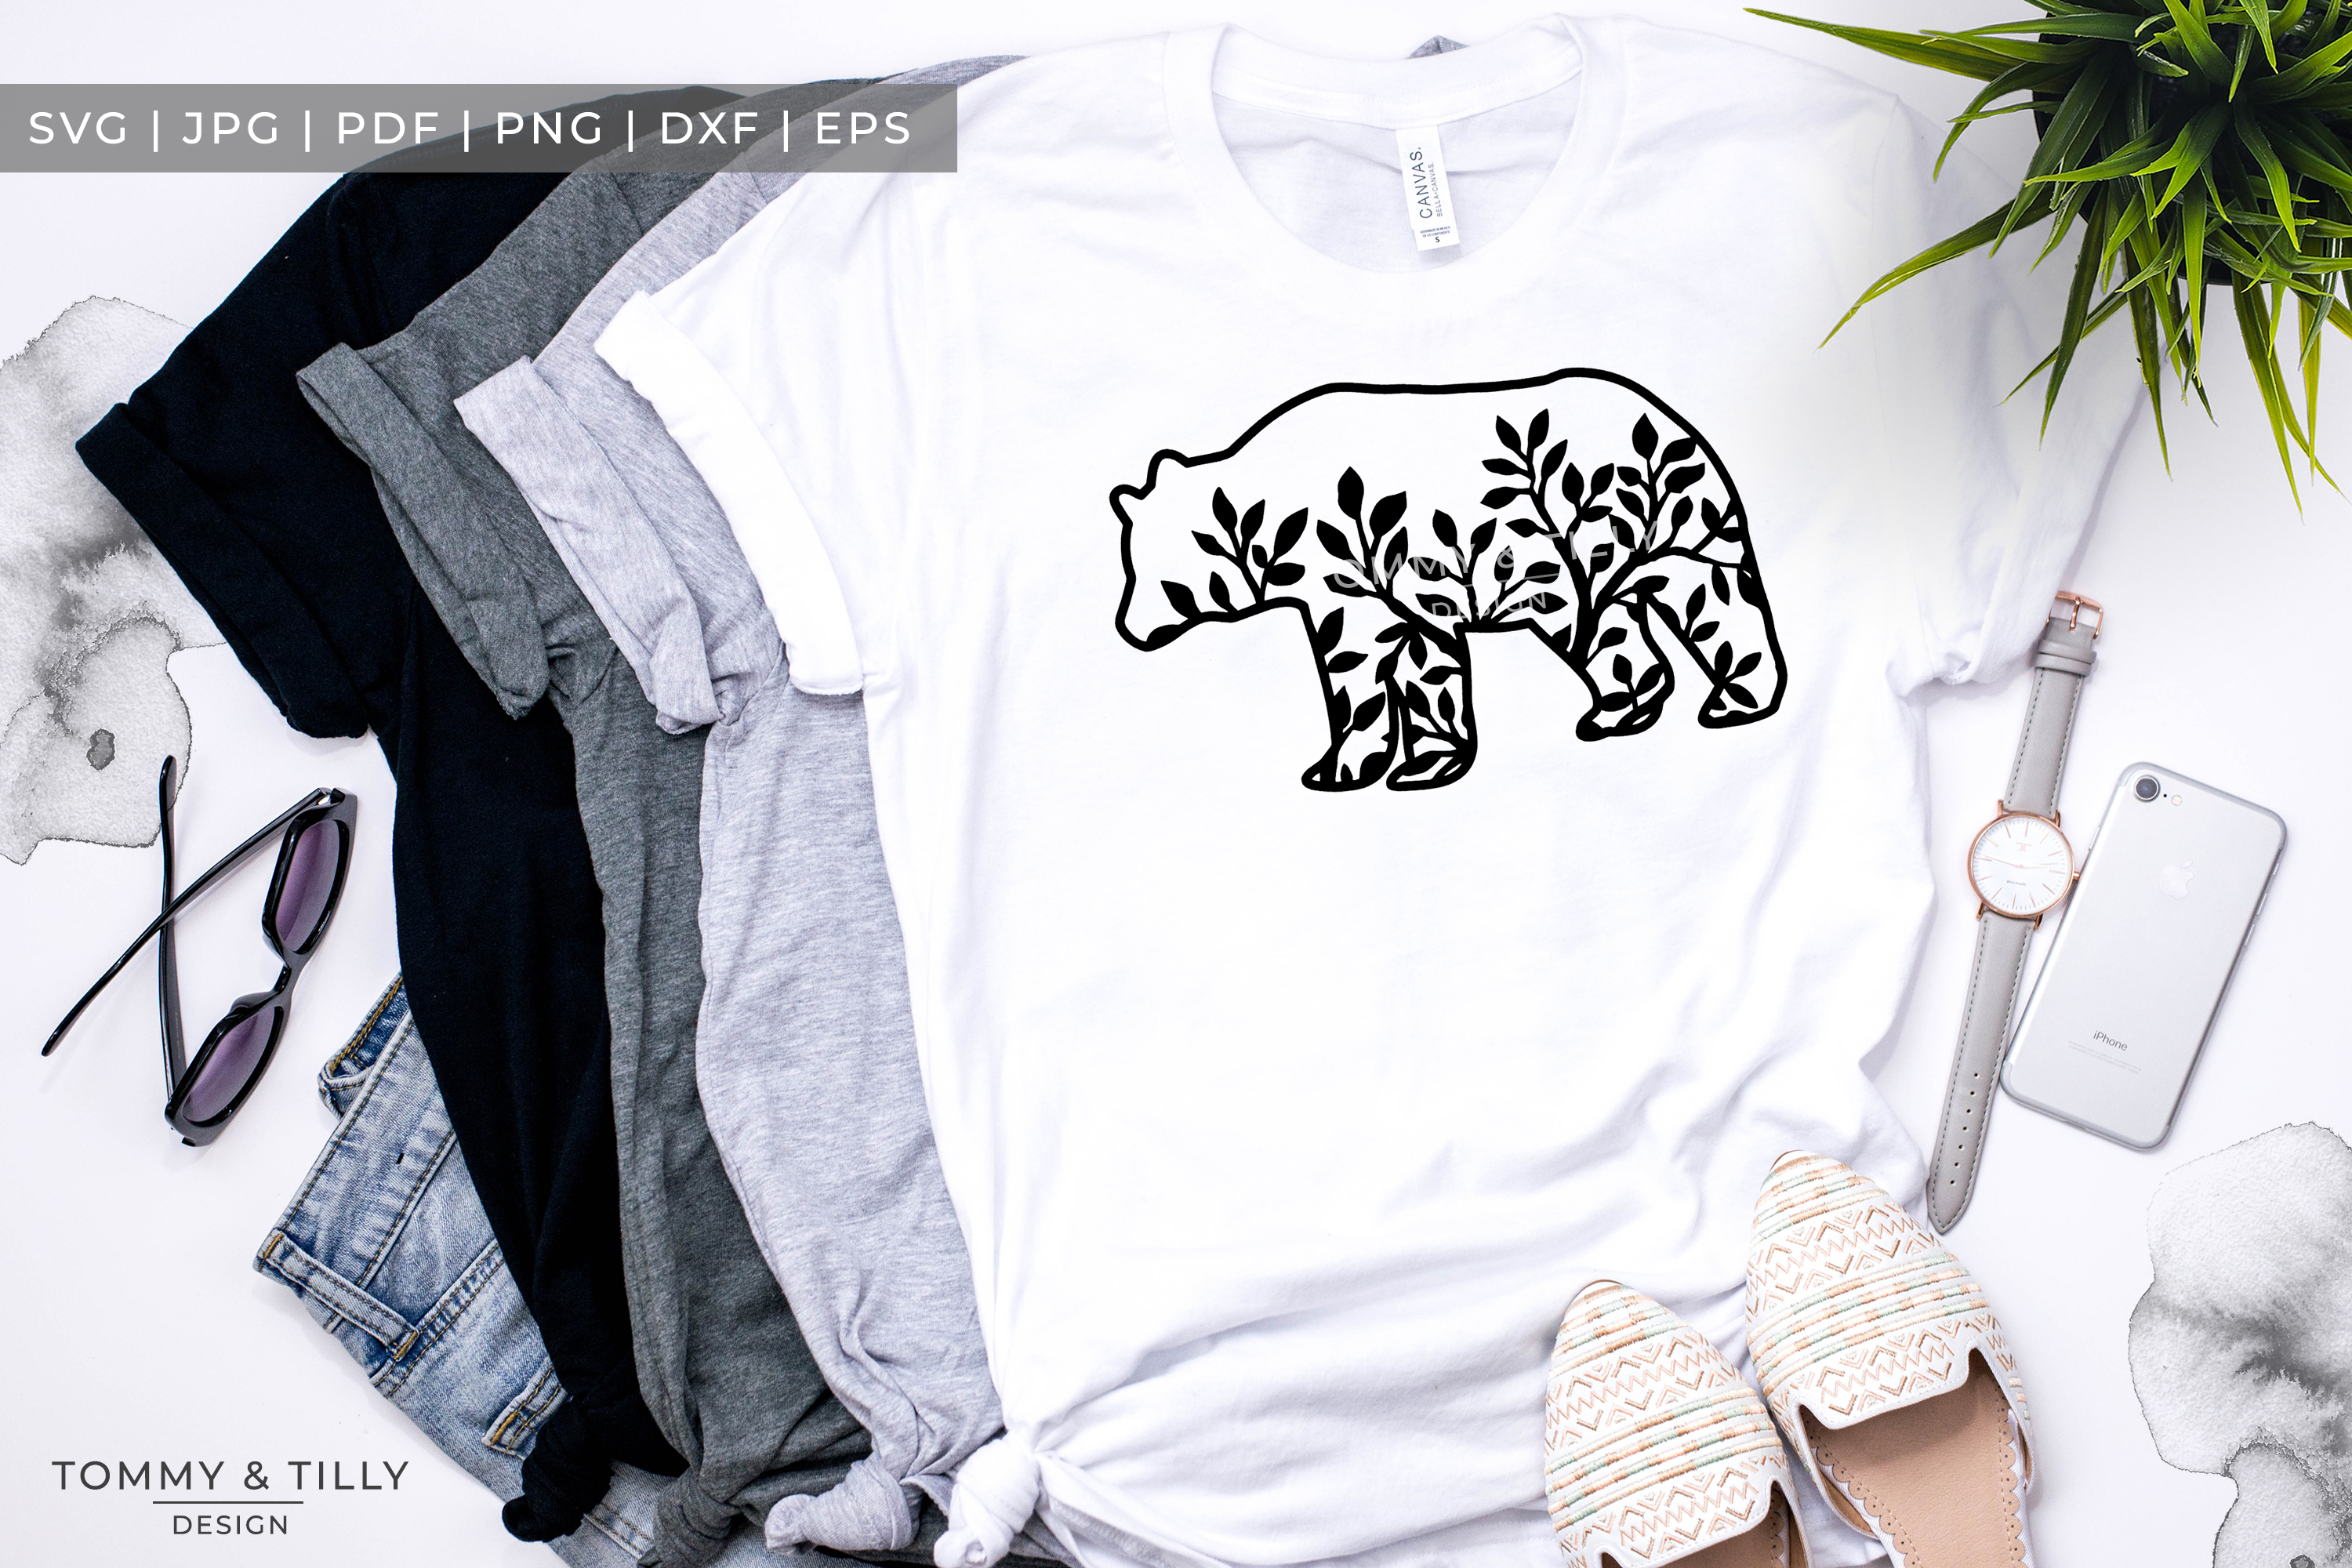 Foliage Bear x 3 - Papercut Template SVG EPS DXF PNG PDF example image 1